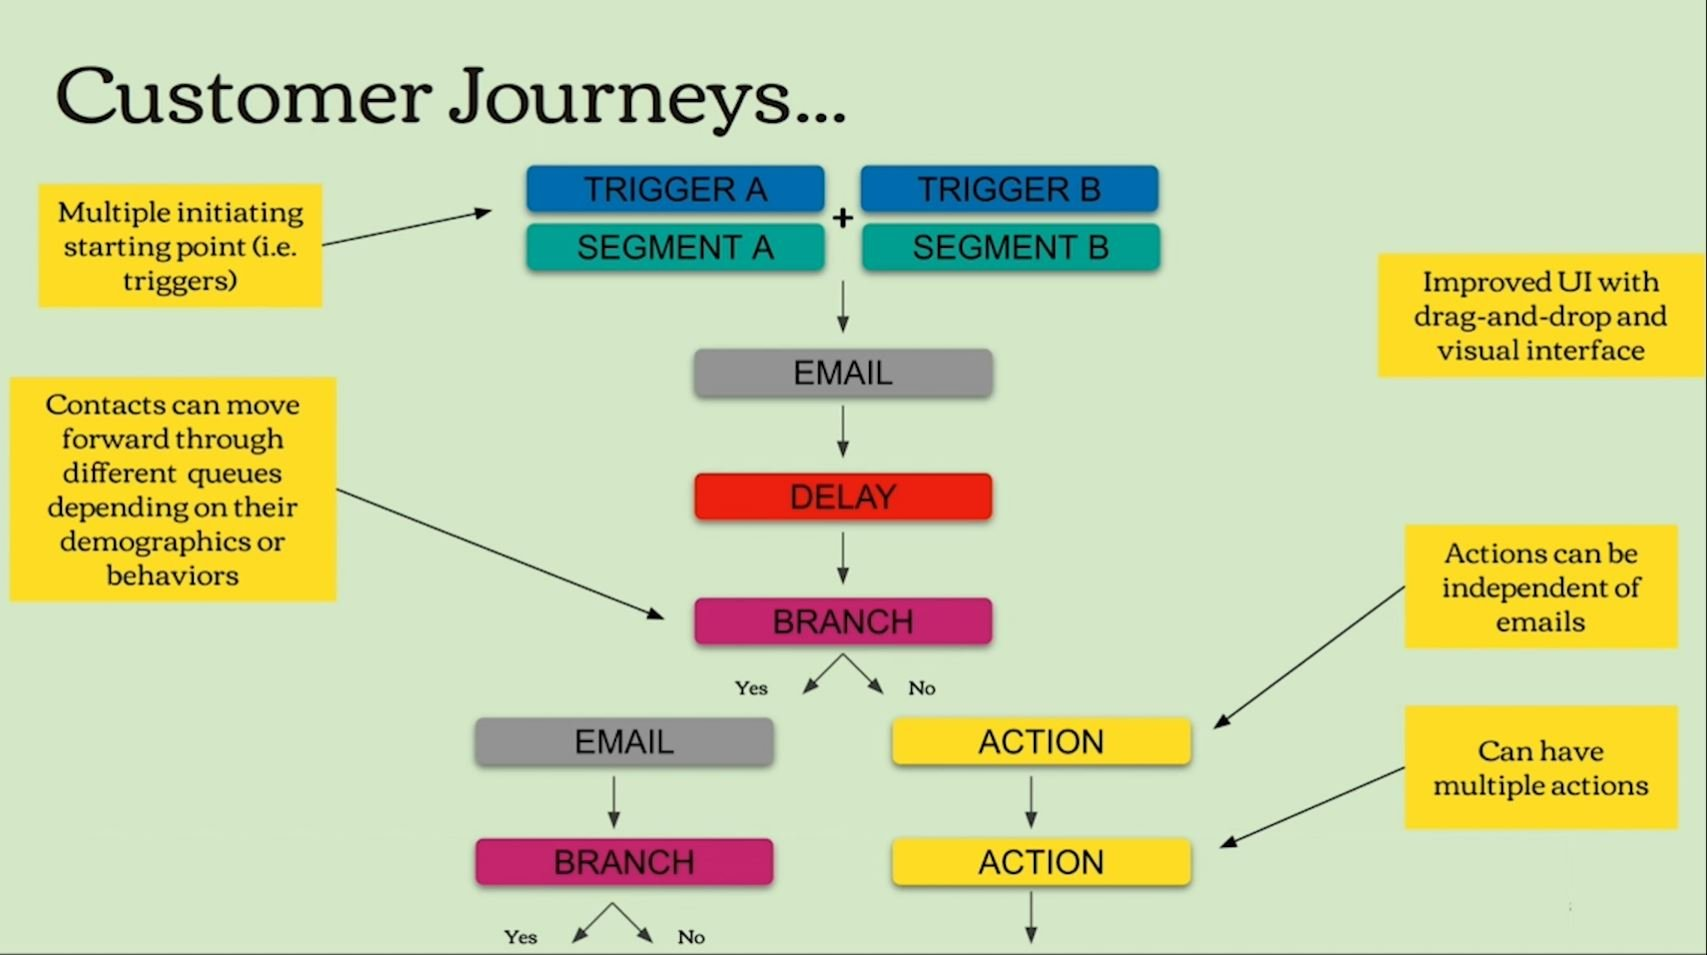 image showing Mailchimp Customer Journeys